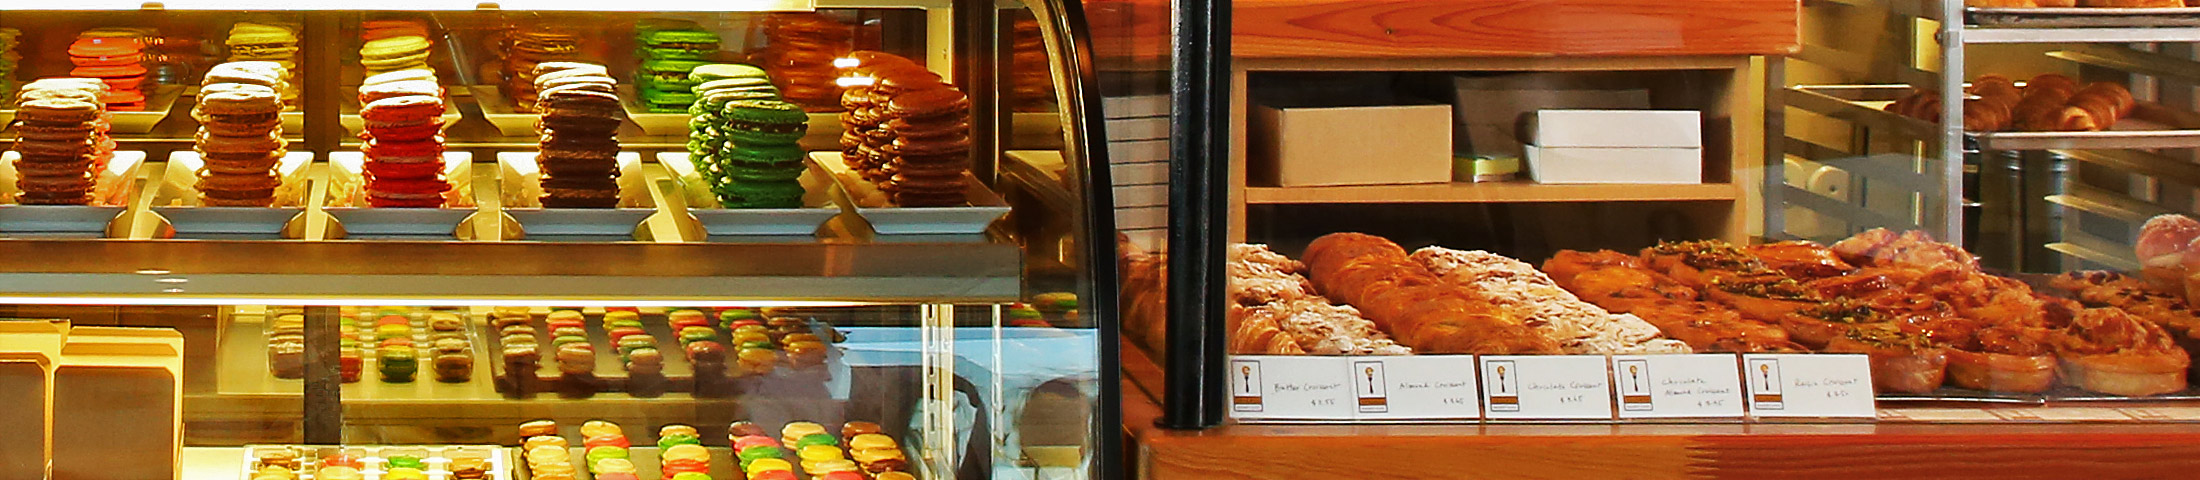 pastry-counter